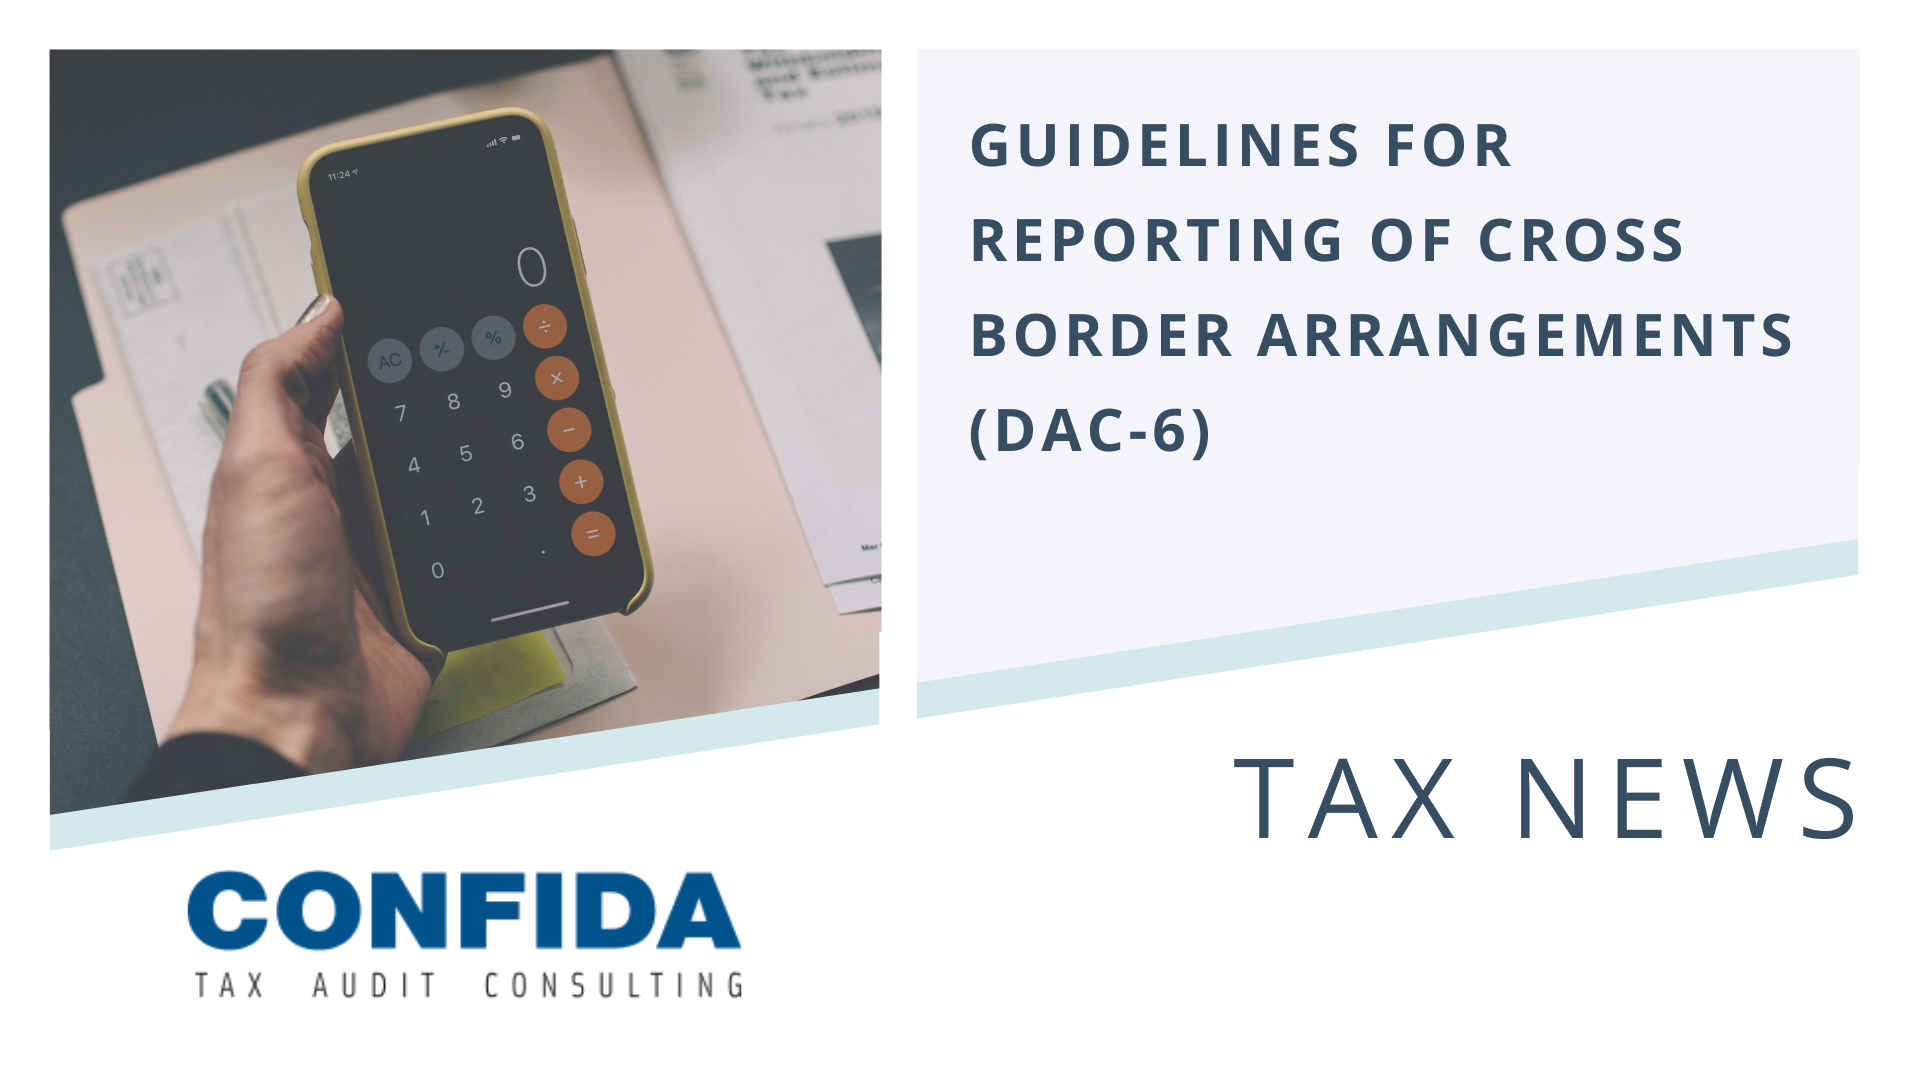 Guidelines for reporting of cross border arrangements (DAC-6)